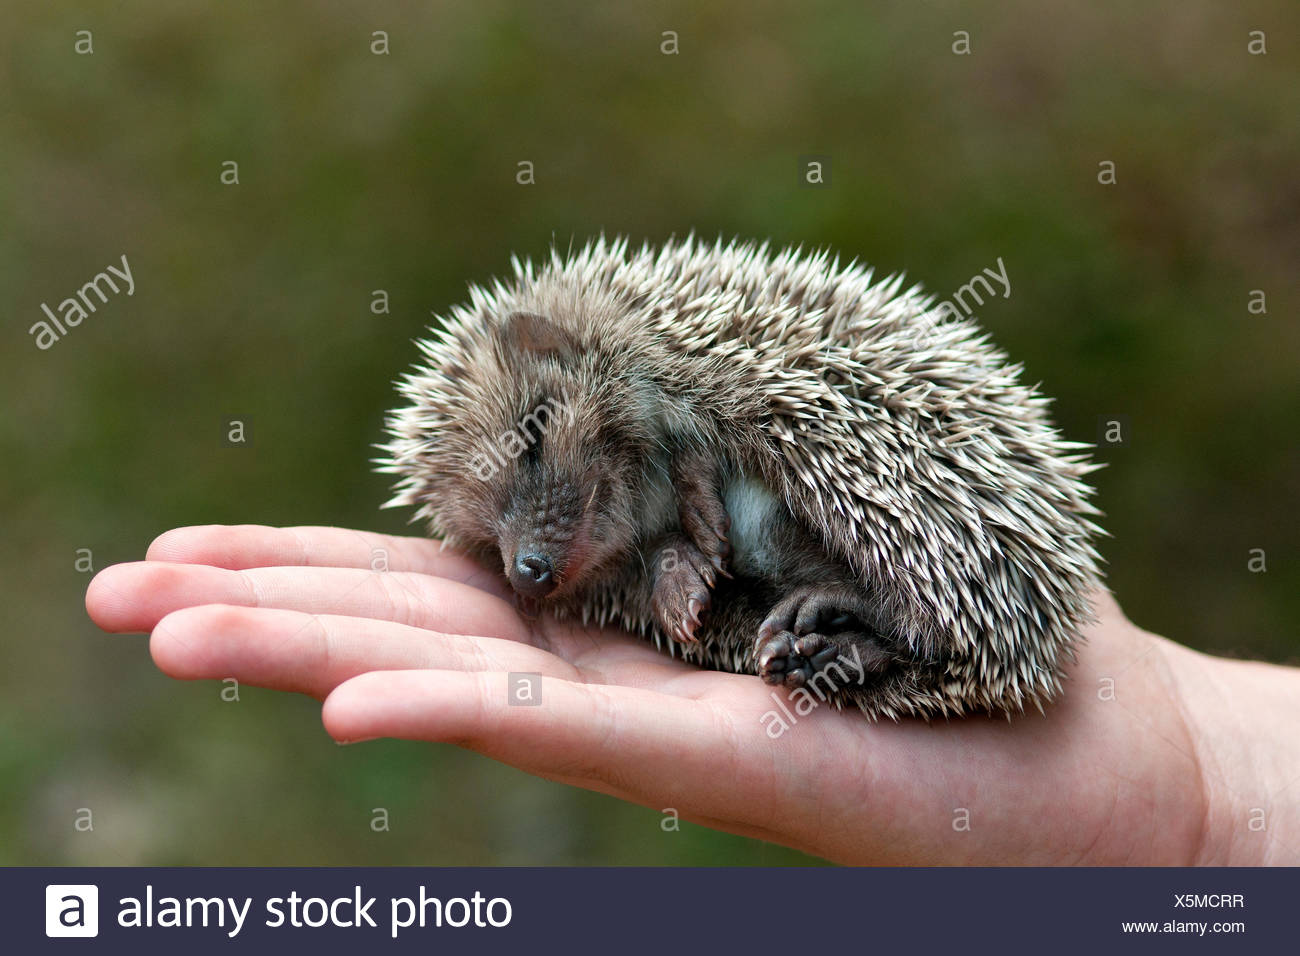 hedgehog mammal wild - Stock Image